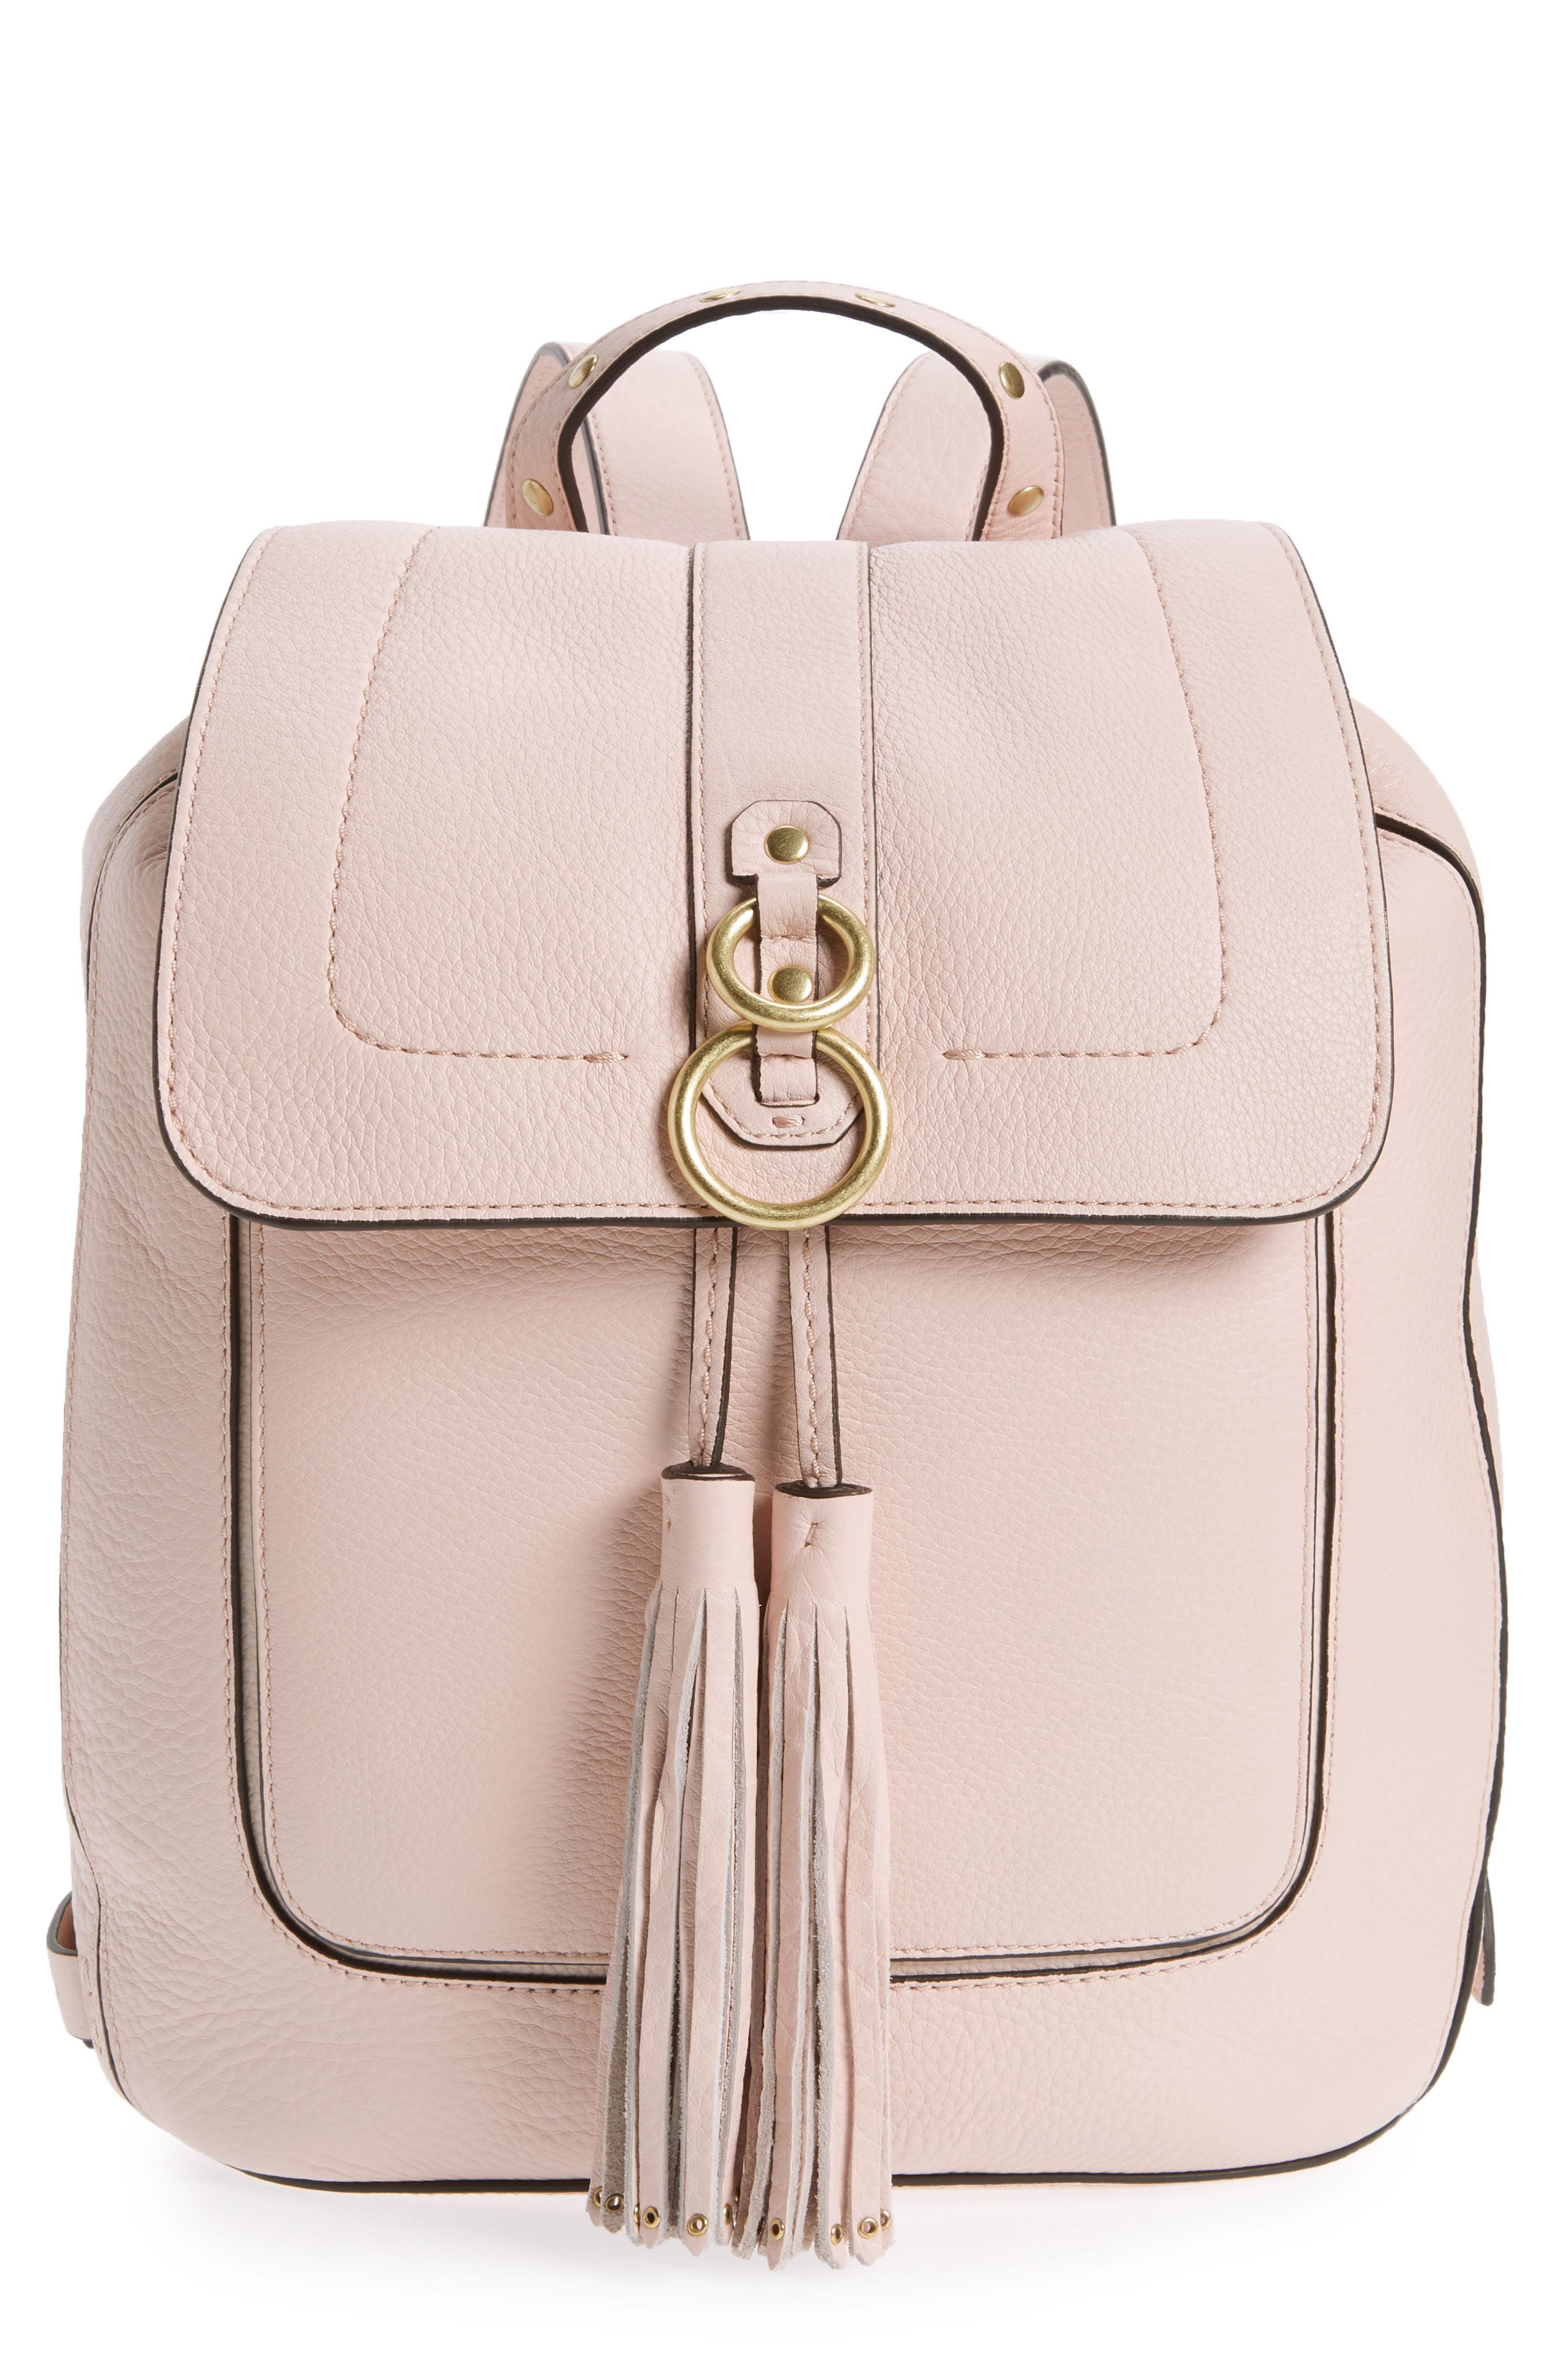 Cassidy RFID Pebbled Leather Backpack,                             Main thumbnail 1, color,                             Peach Blush